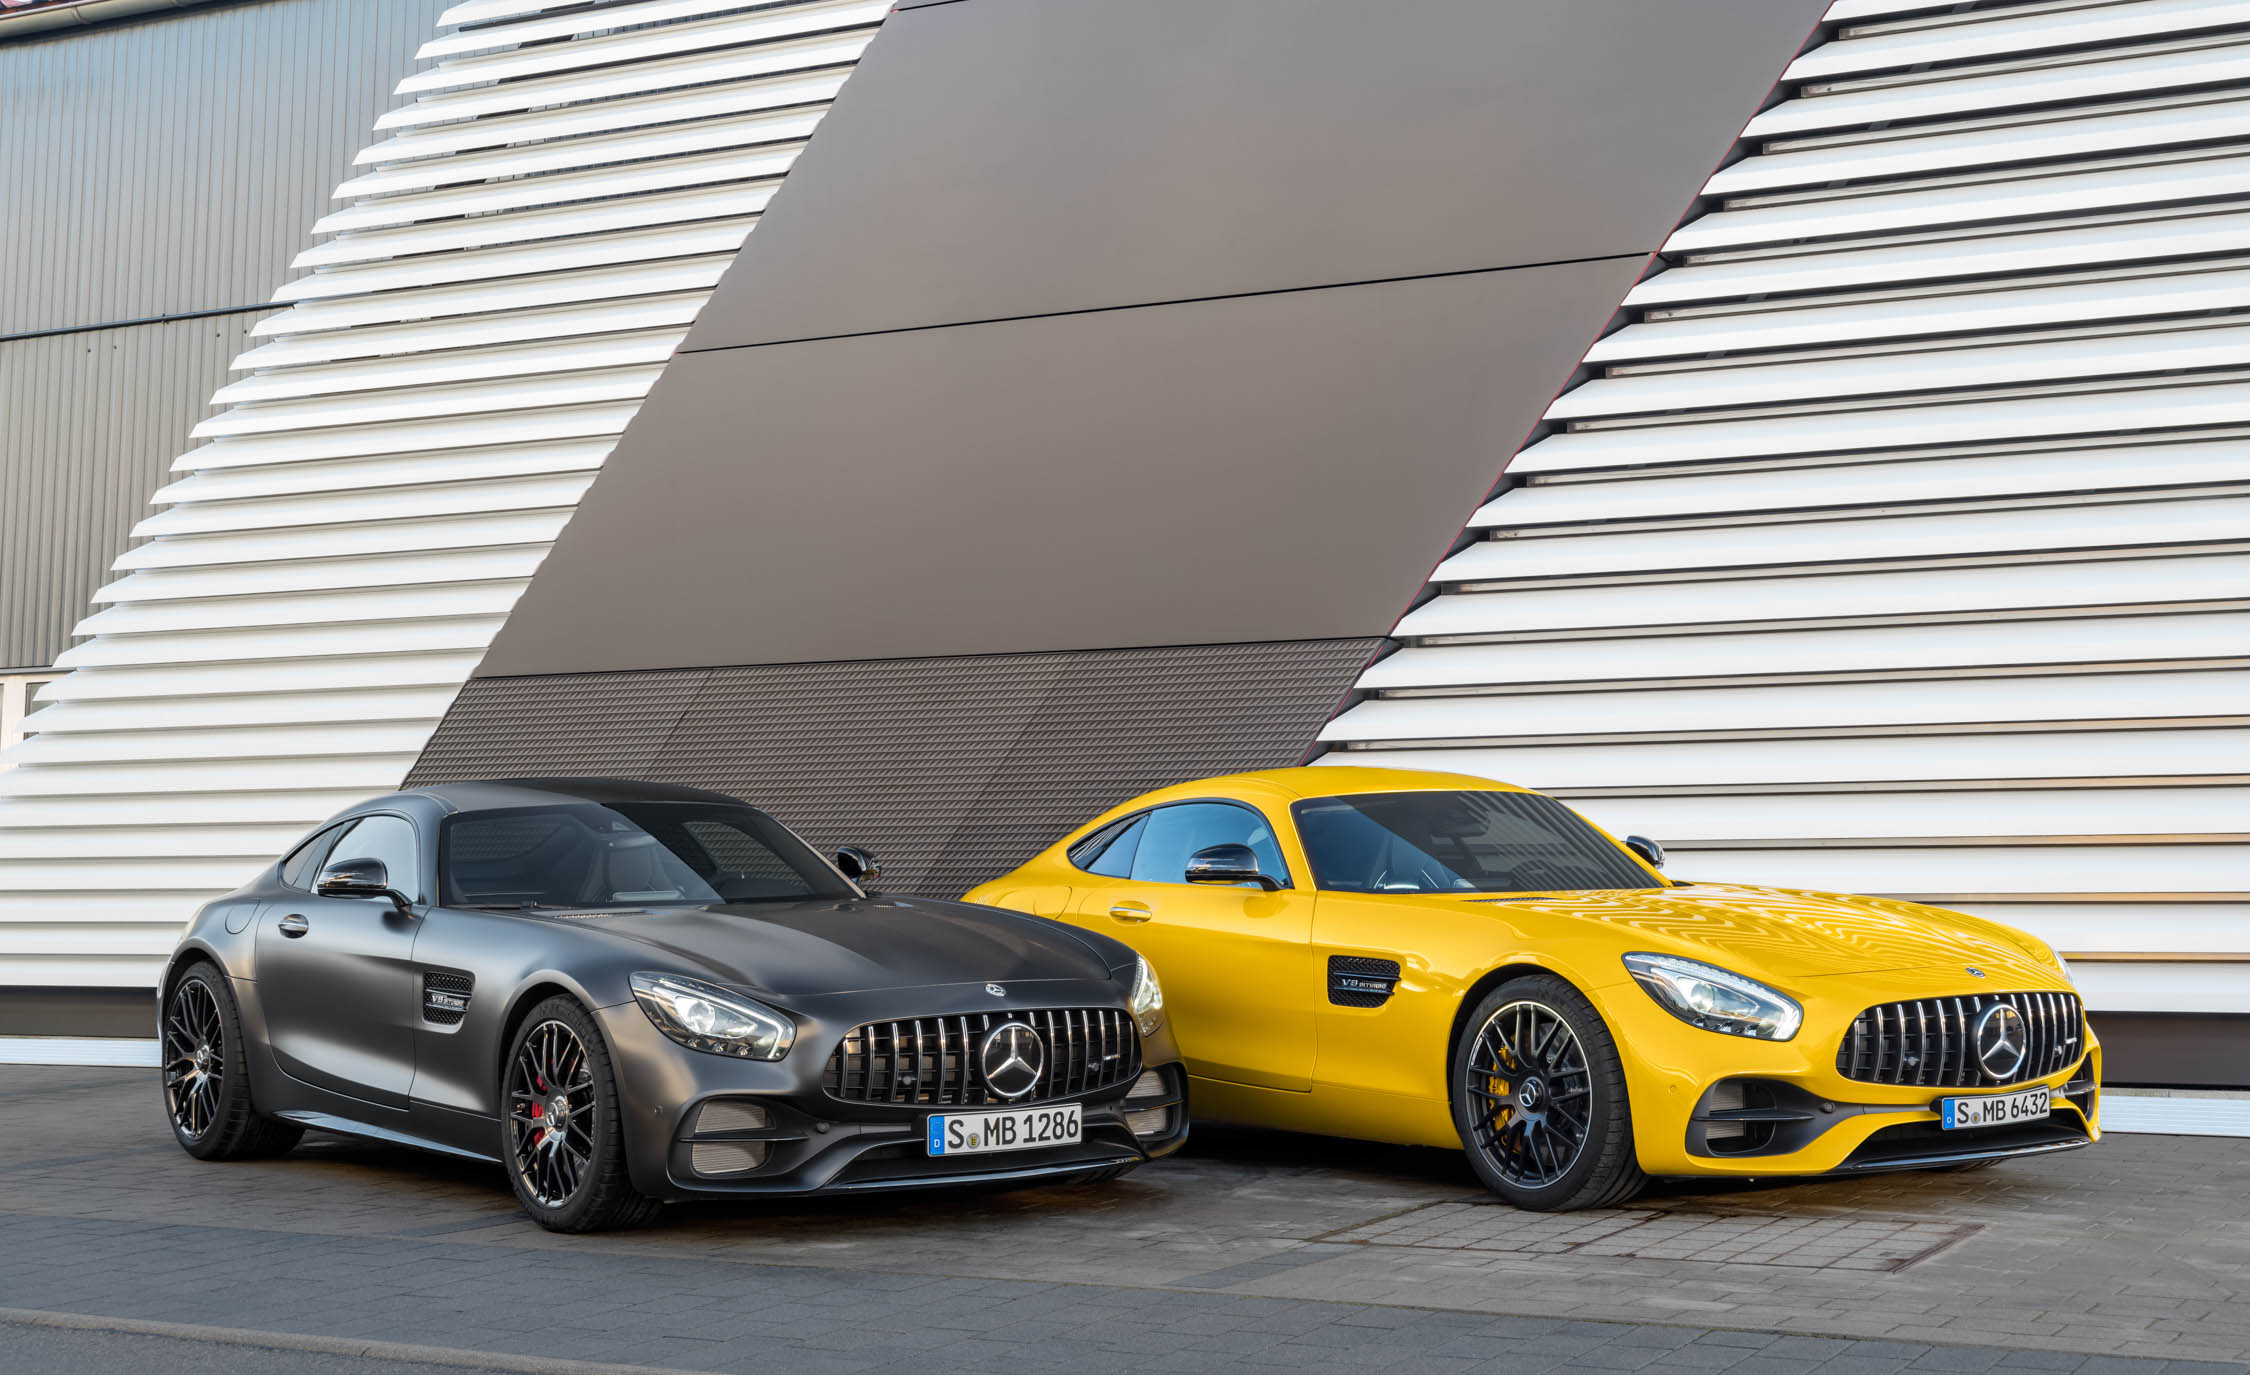 2018 Mercedes Amg Gt S And 2018 Mercedes Amg Gt C (View 9 of 23)